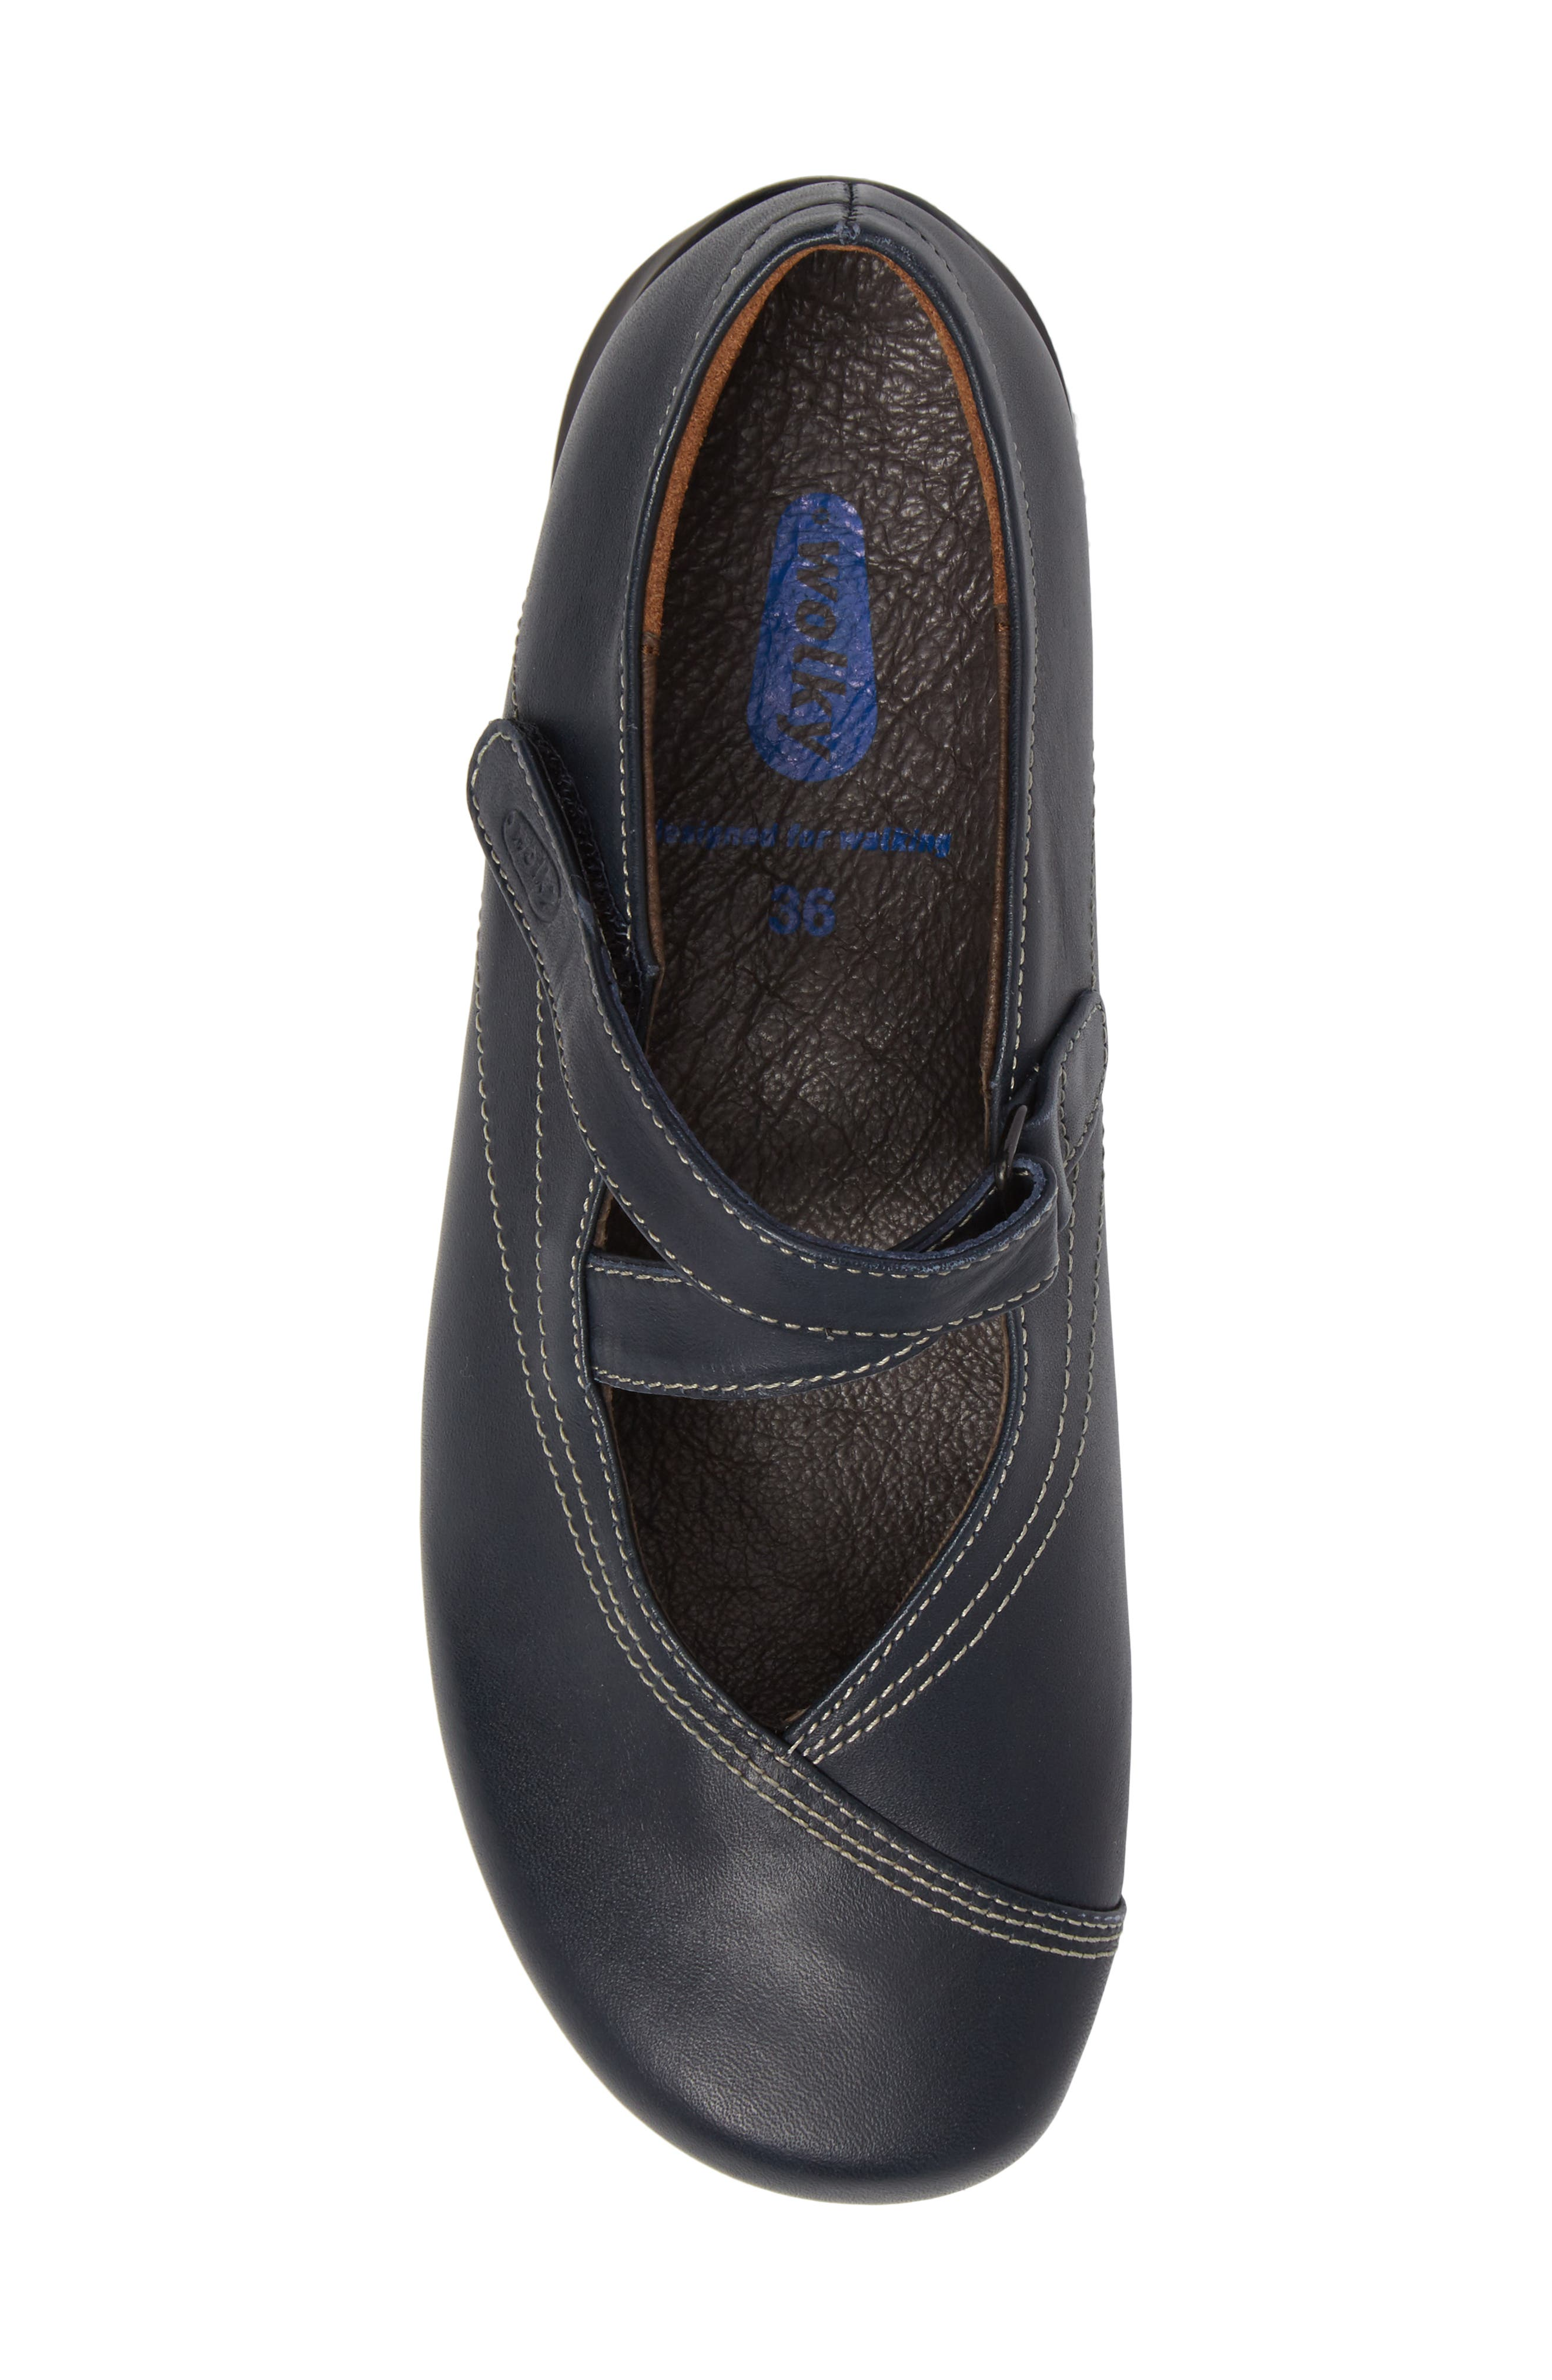 WOLKY,                             Passion Mary Jane Flat,                             Alternate thumbnail 5, color,                             NAVY LEATHER